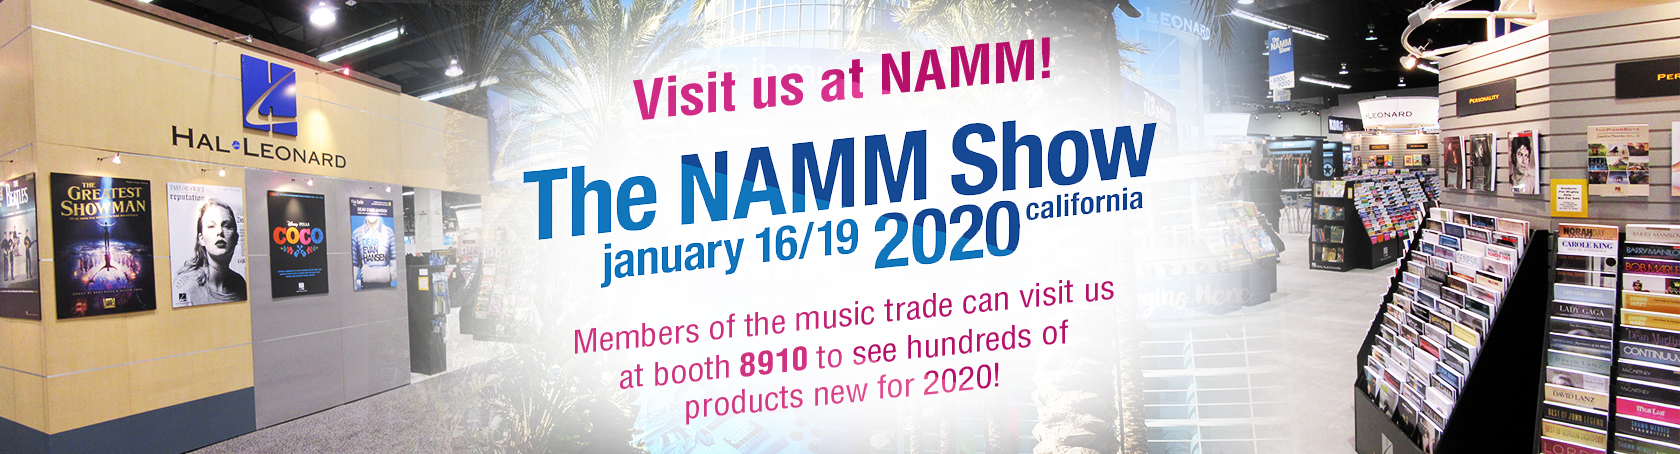 Visit us at NAMM